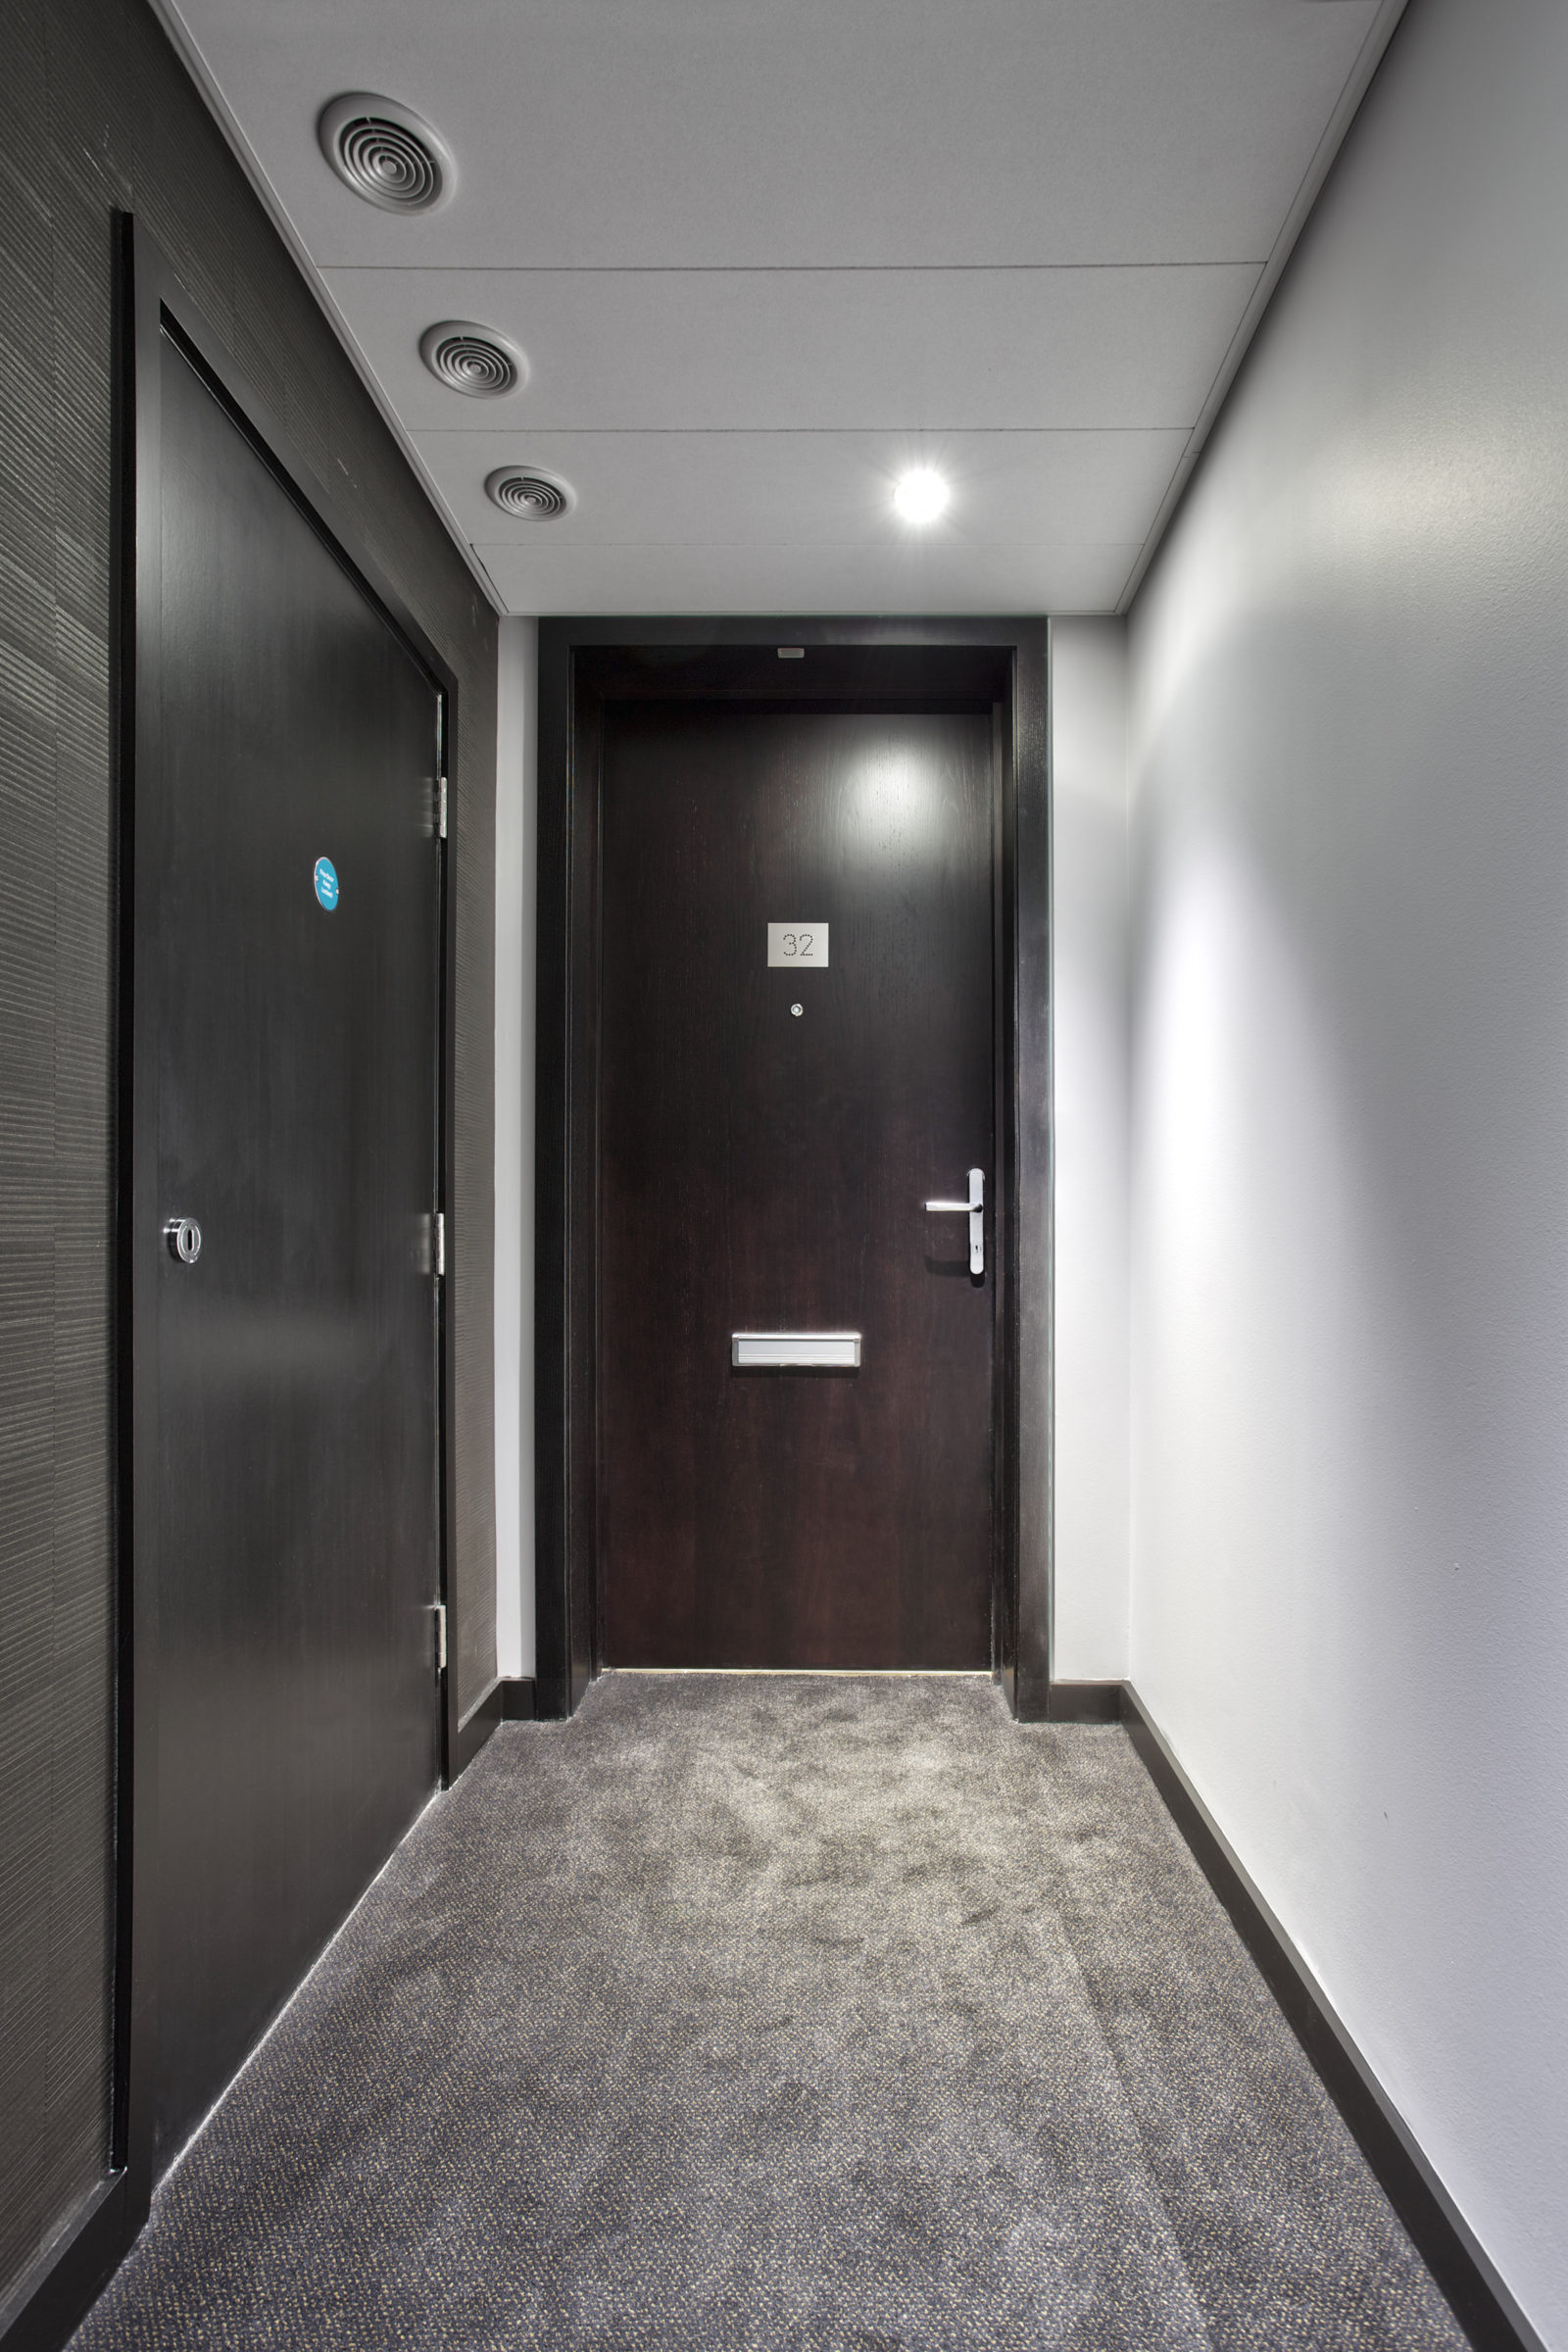 Secured by Design/PAS 24 Apartment entrance doorsets for Parliament House